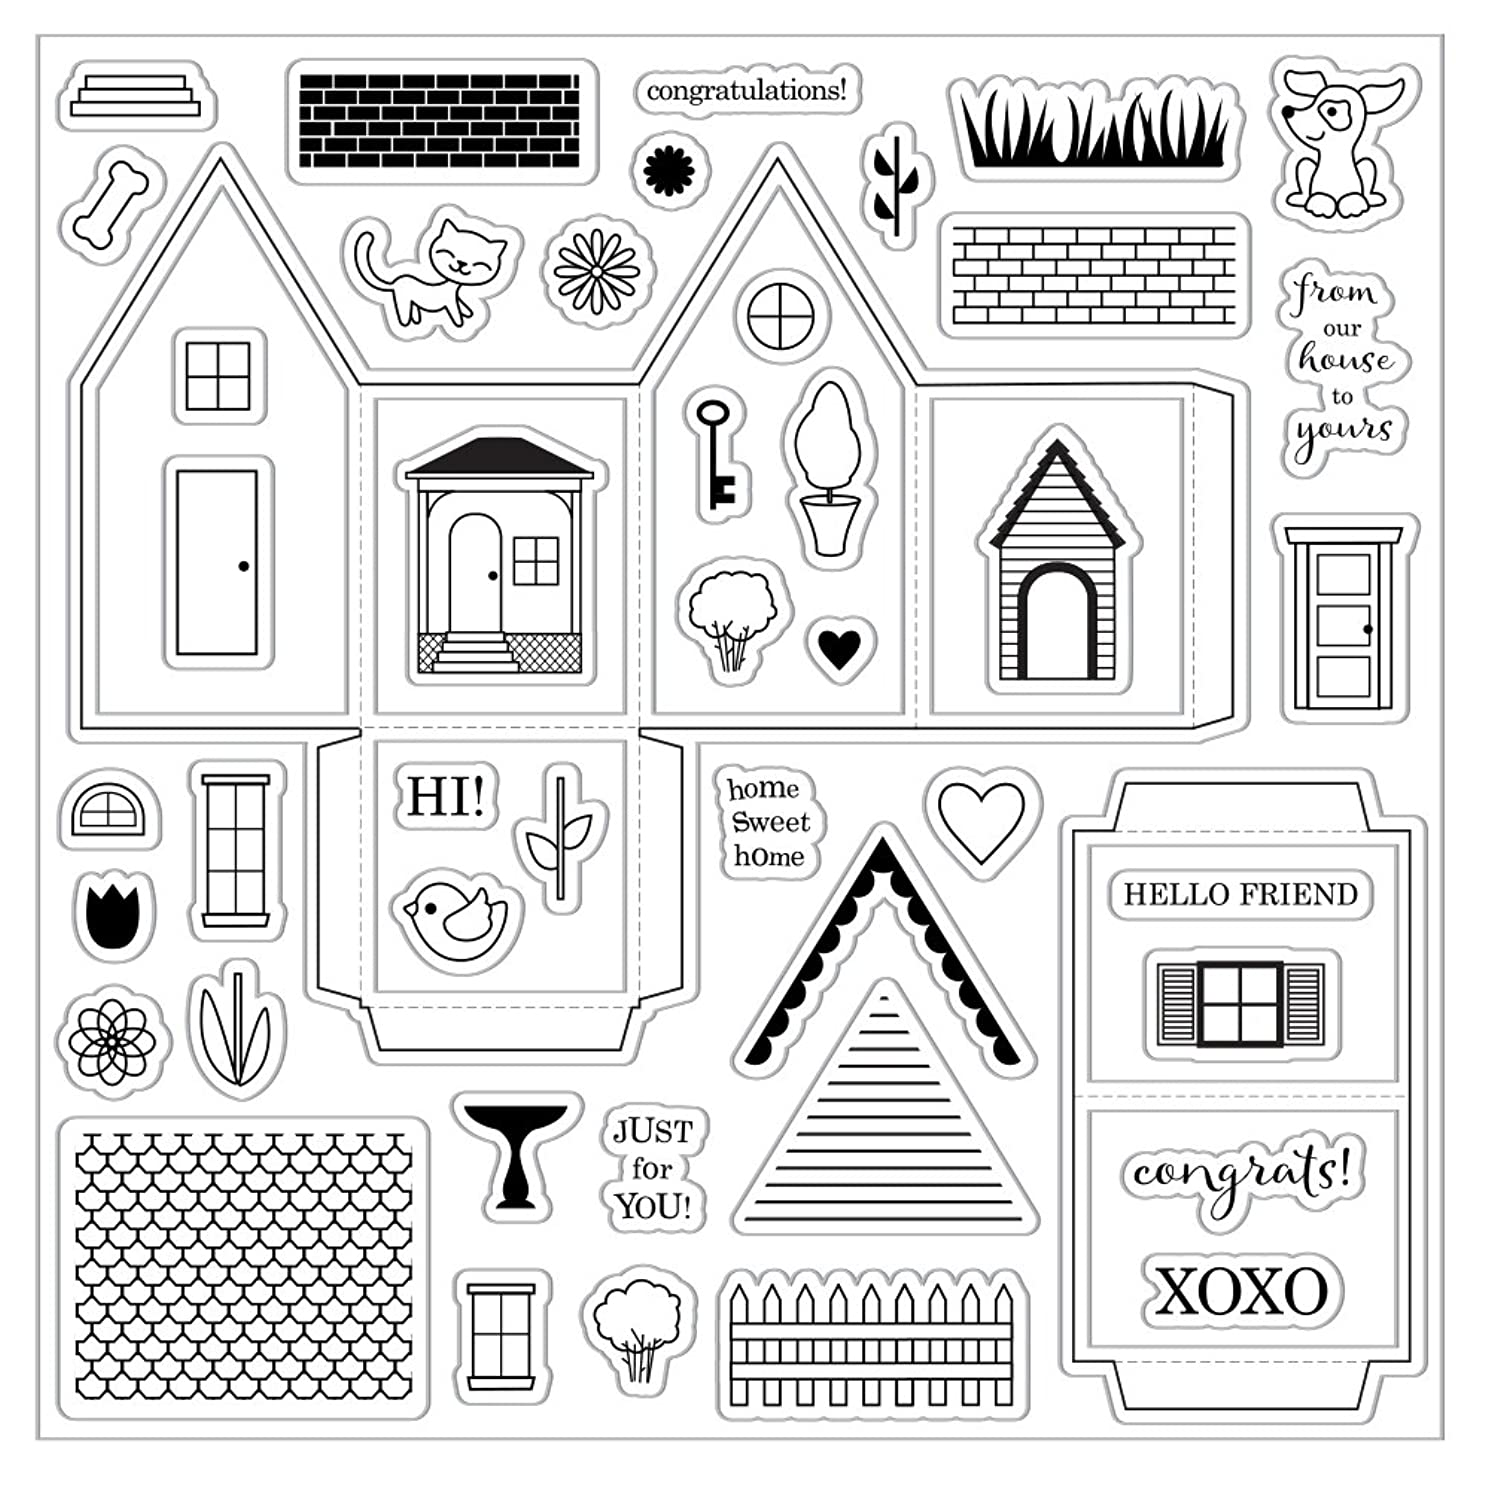 Fiskars Crafts 126480-1001 Tiny Little Sweet Home 8x8 Clear Stamp